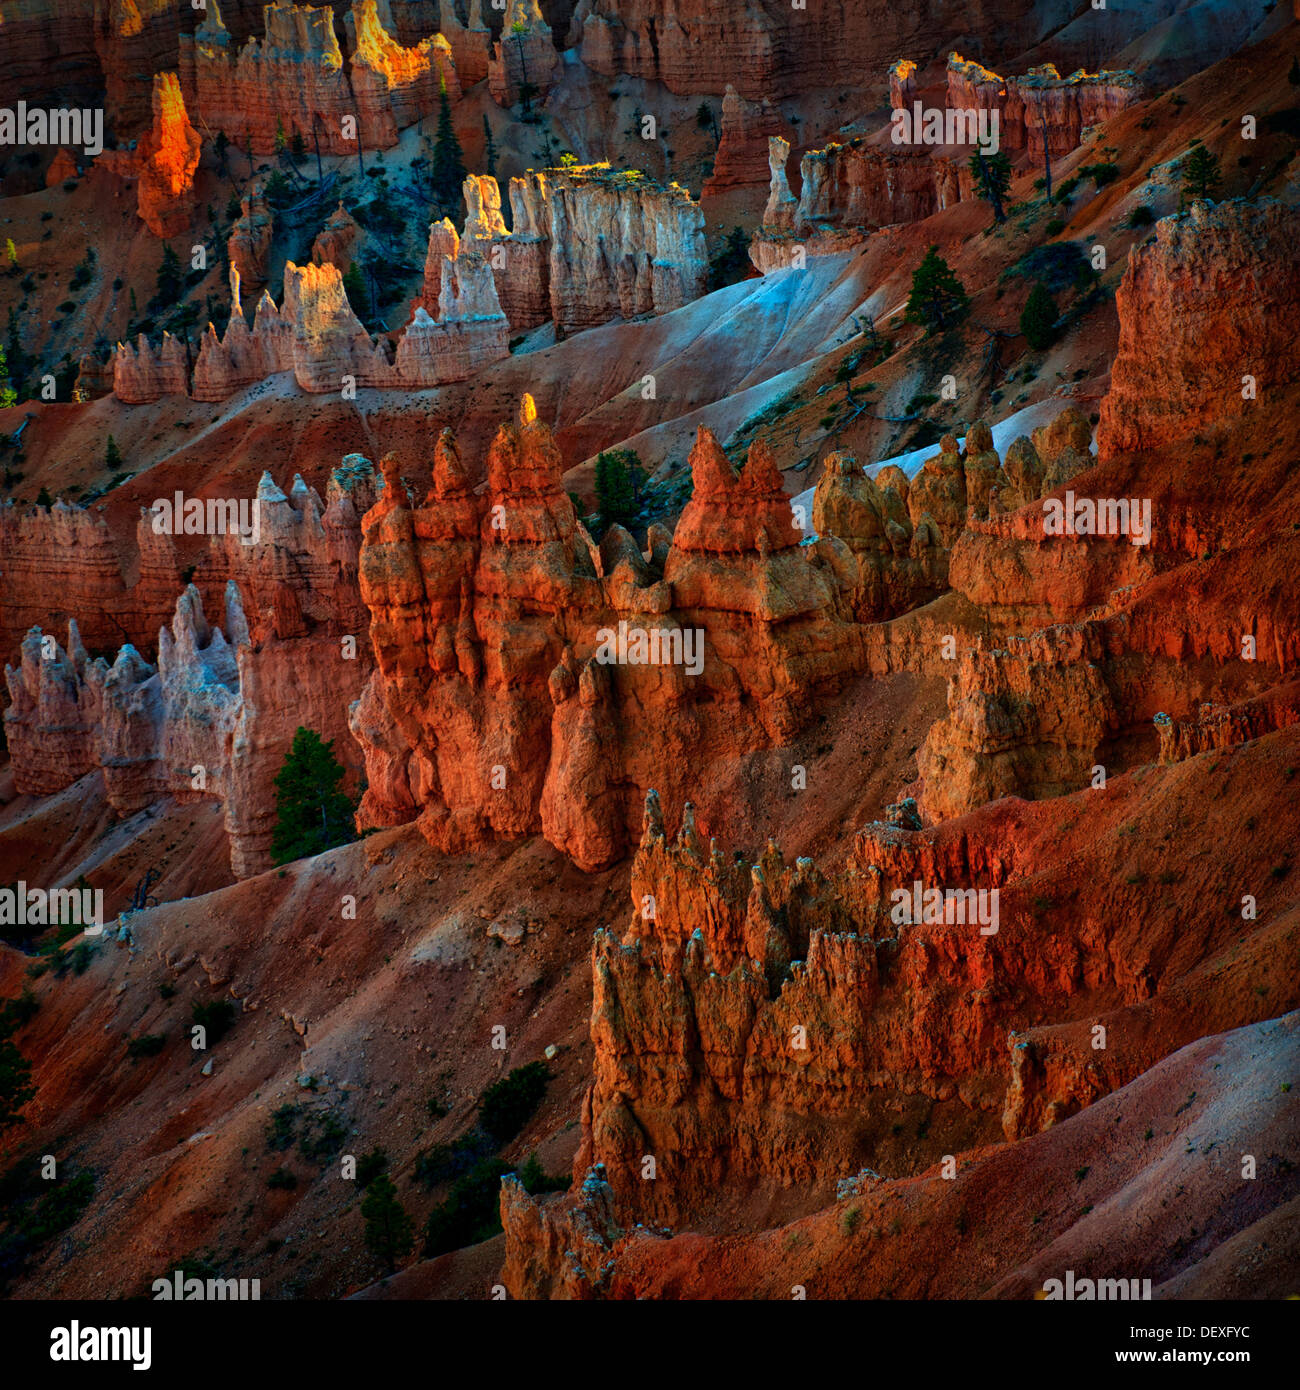 Bryce Point,Bryce Canyon National Park, high quality ,high resolution,square format image Stock Photo